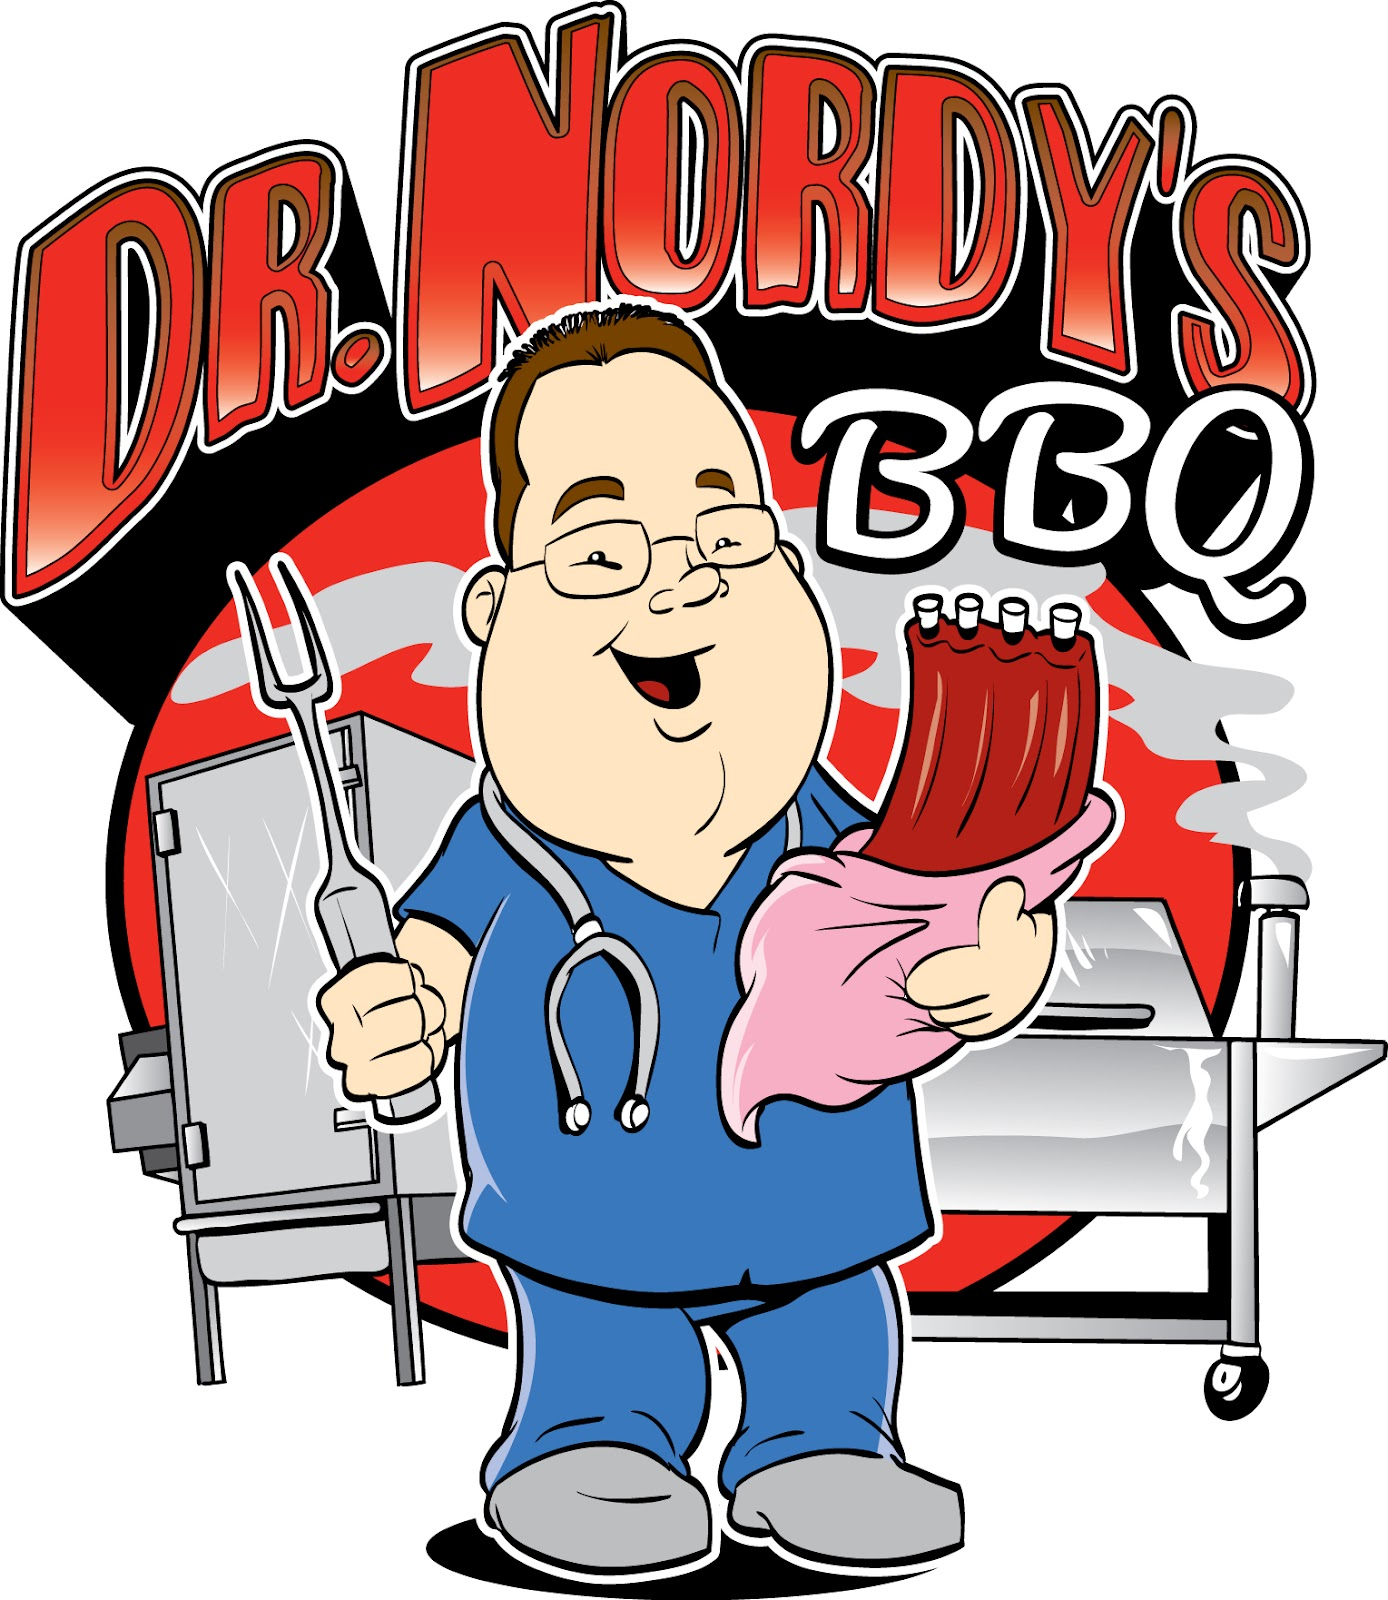 ... competition for Dr. Nordy's BBQ team was March 23-24 at the Sams Club